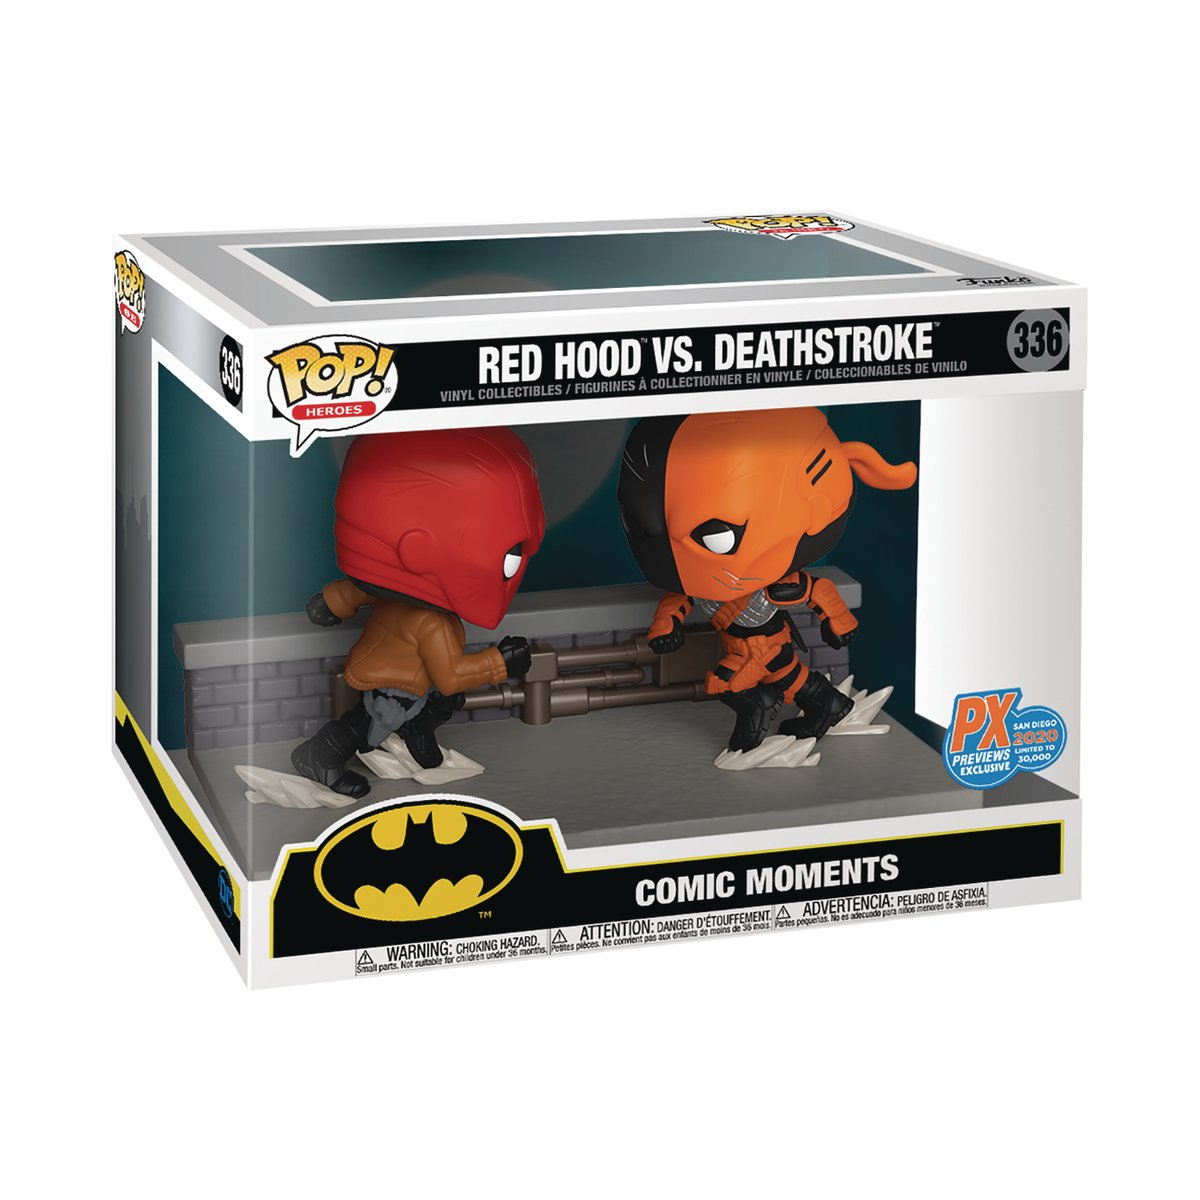 Red Hood vs Deathstroke 2-Pack Previews Exclusive